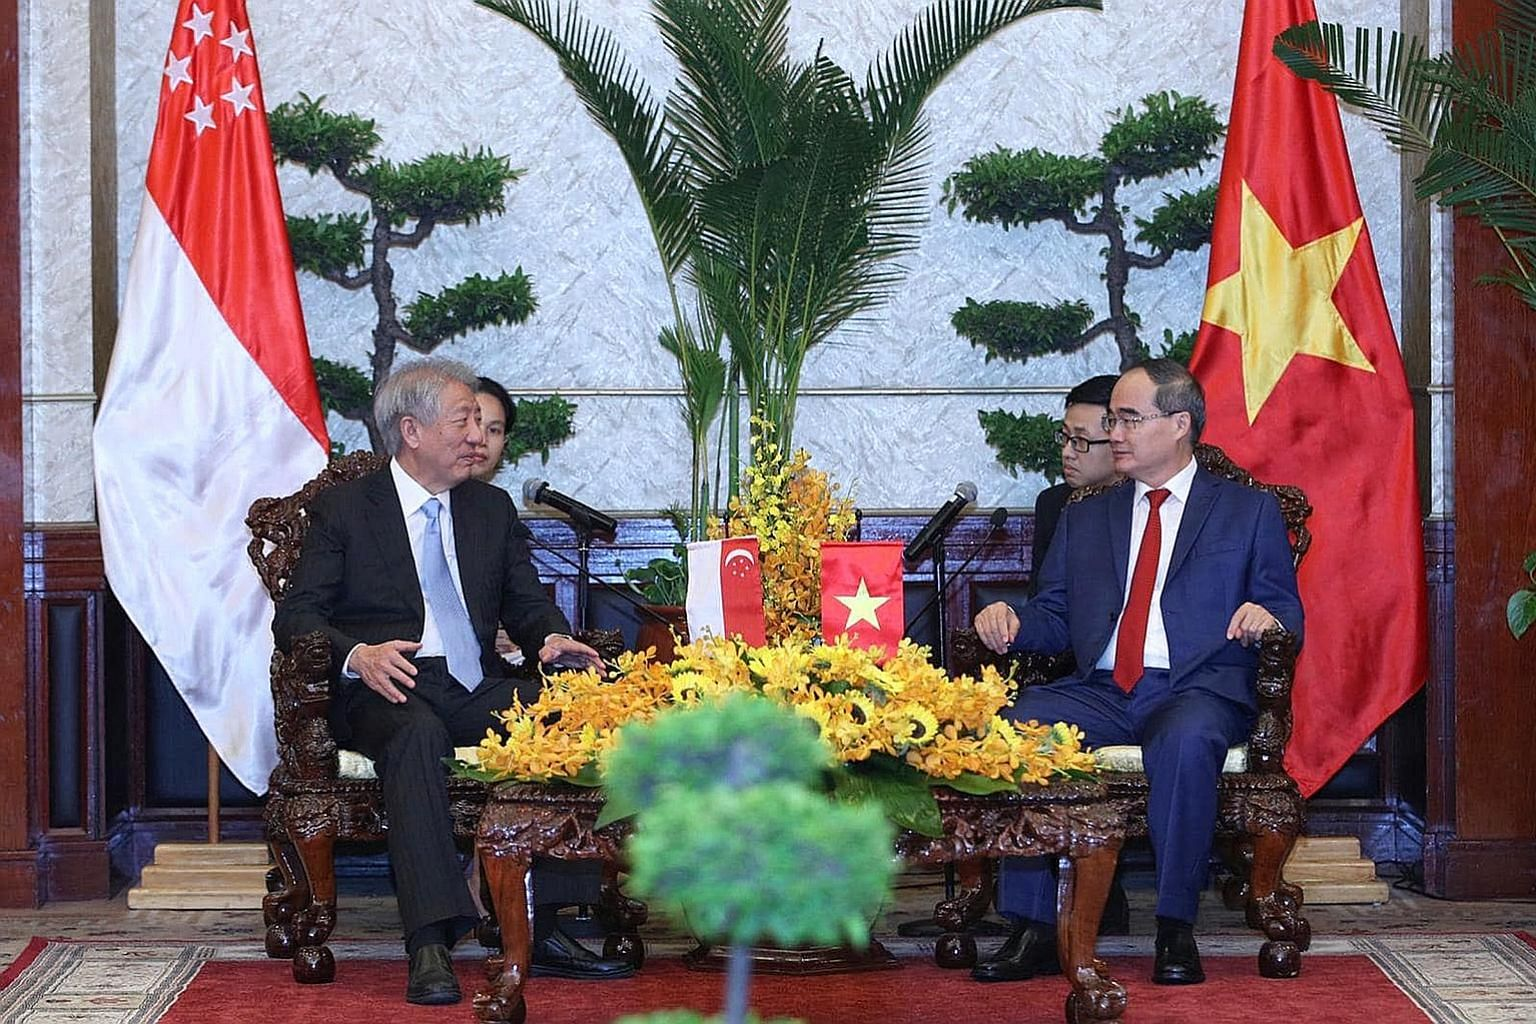 Singapore Deputy Prime Minister and Coordinating Minister for National Security Teo Chee Hean having talks with Ho Chi Minh City party secretary Nguyen Thien Nhan in Vietnam's largest city yesterday.